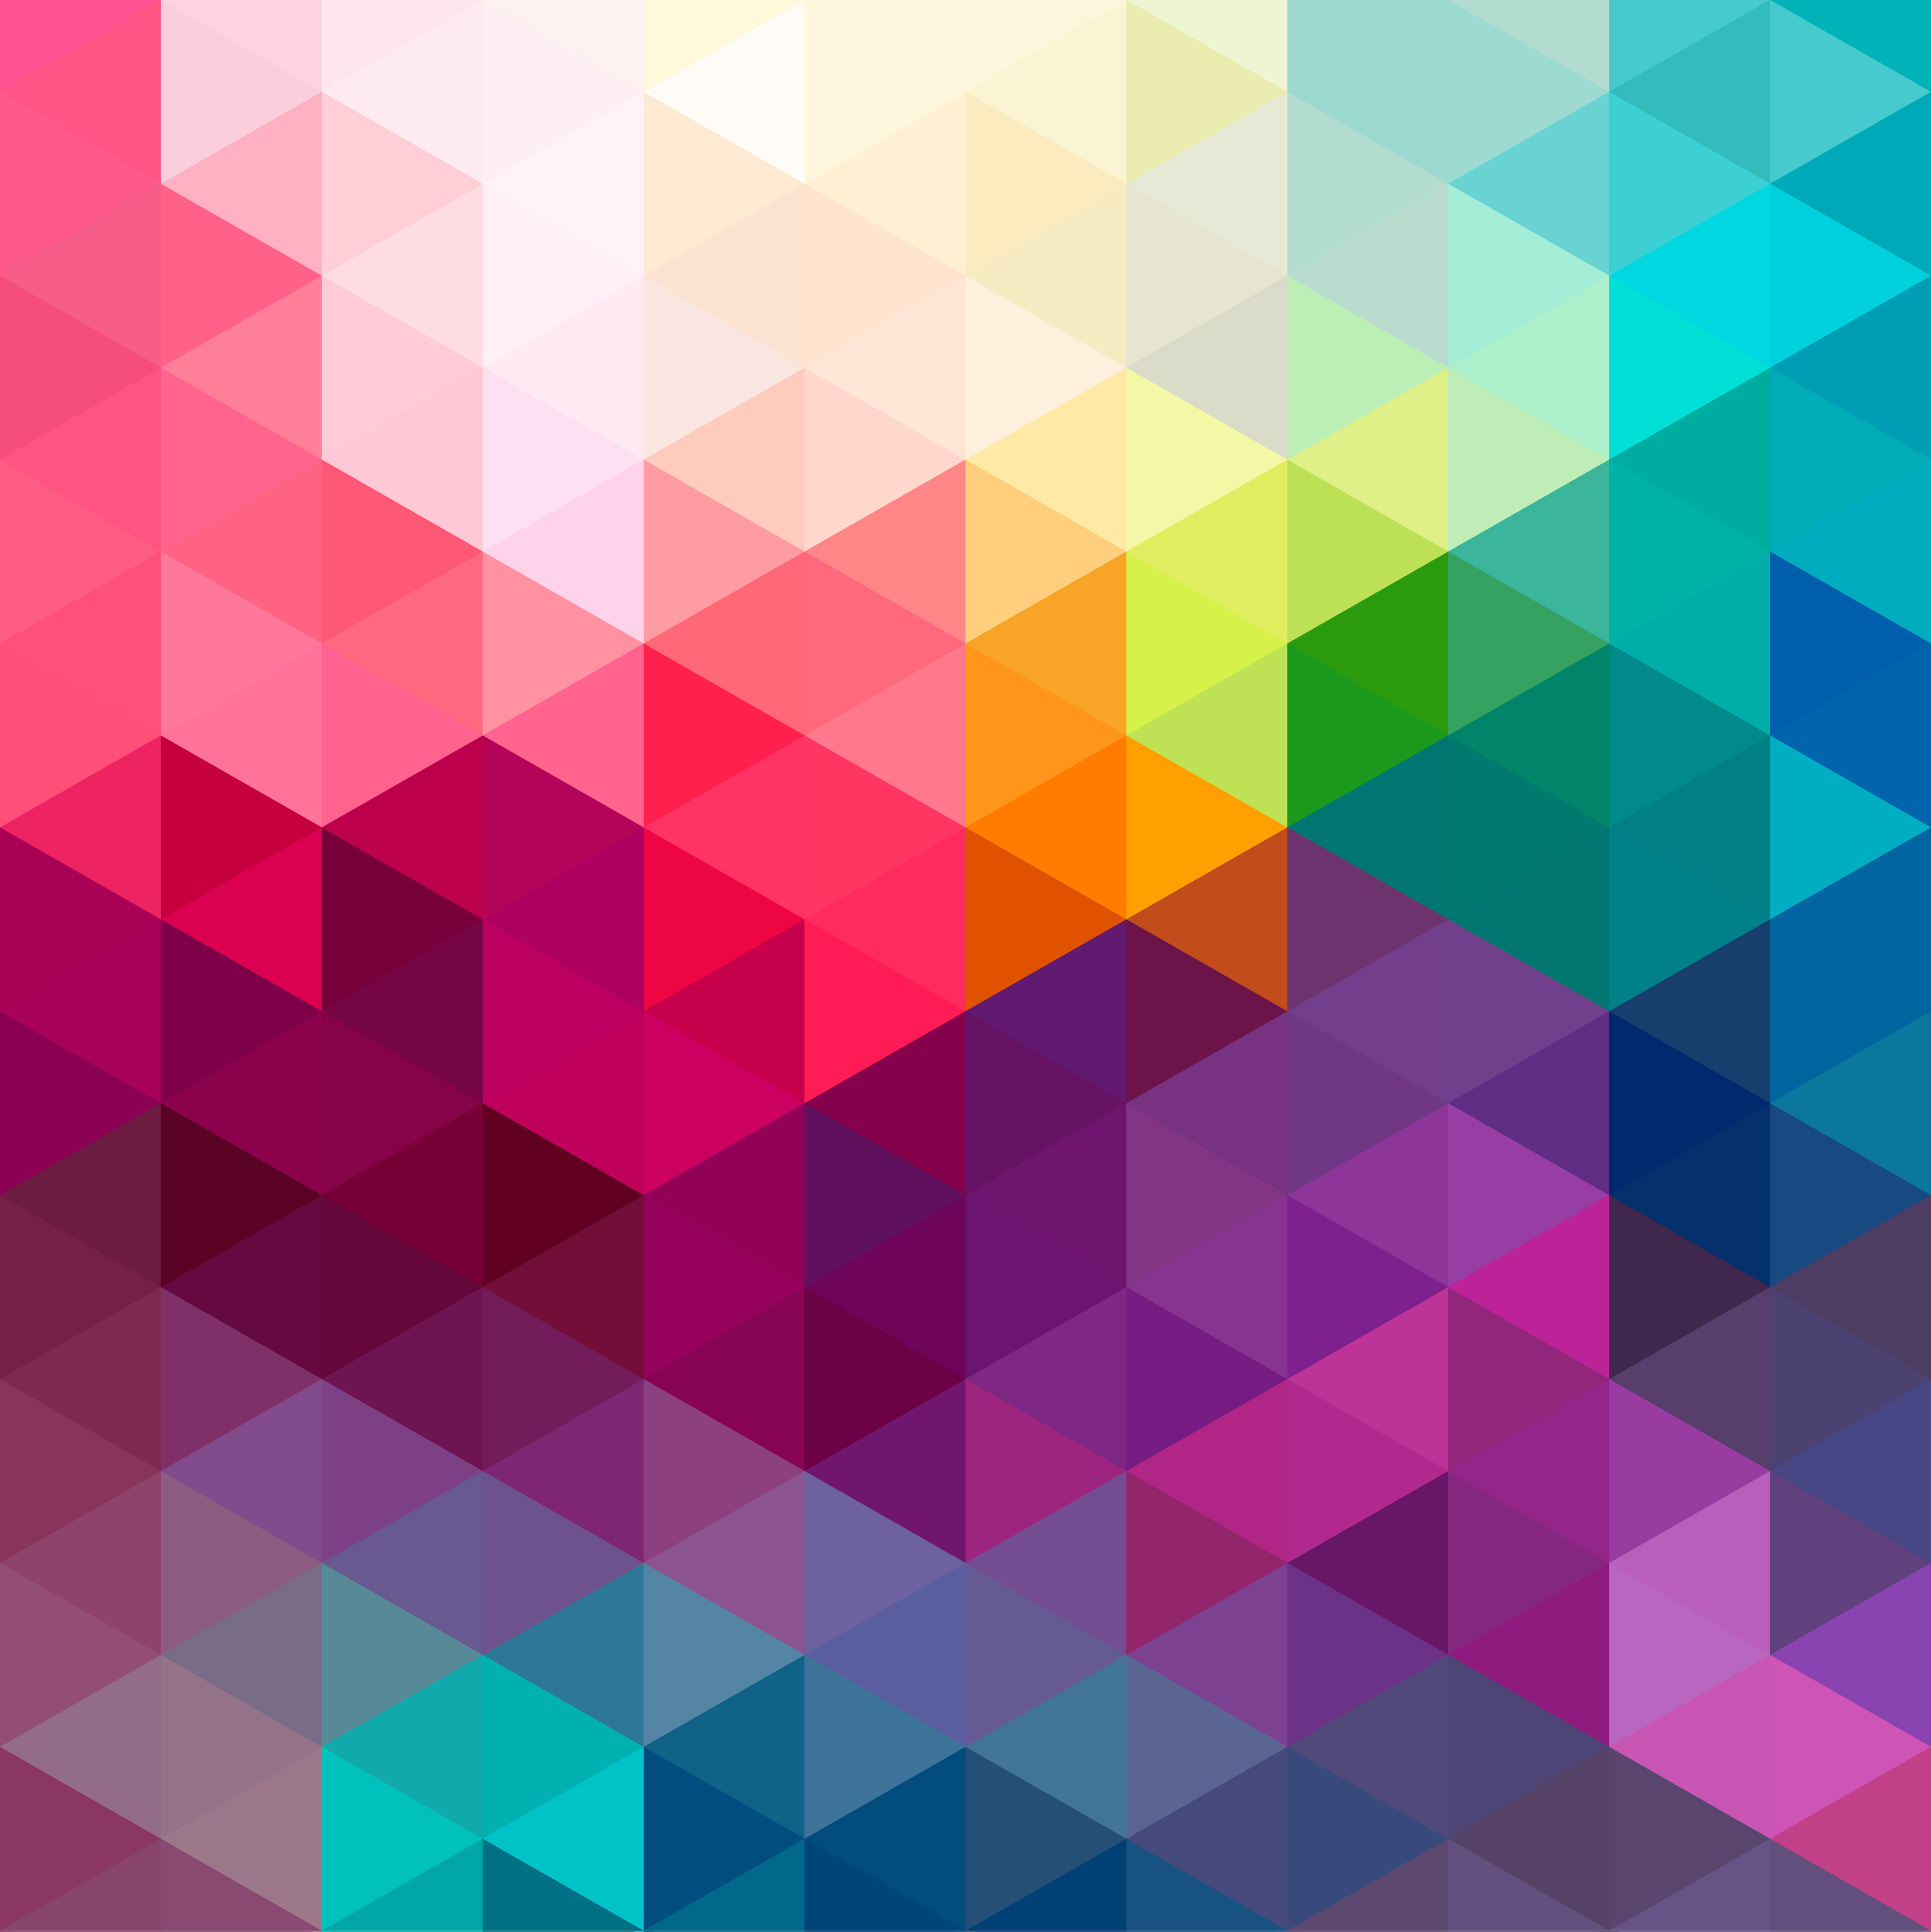 SEDL_2015.jpg (Abstract colorful seamless pattern background)